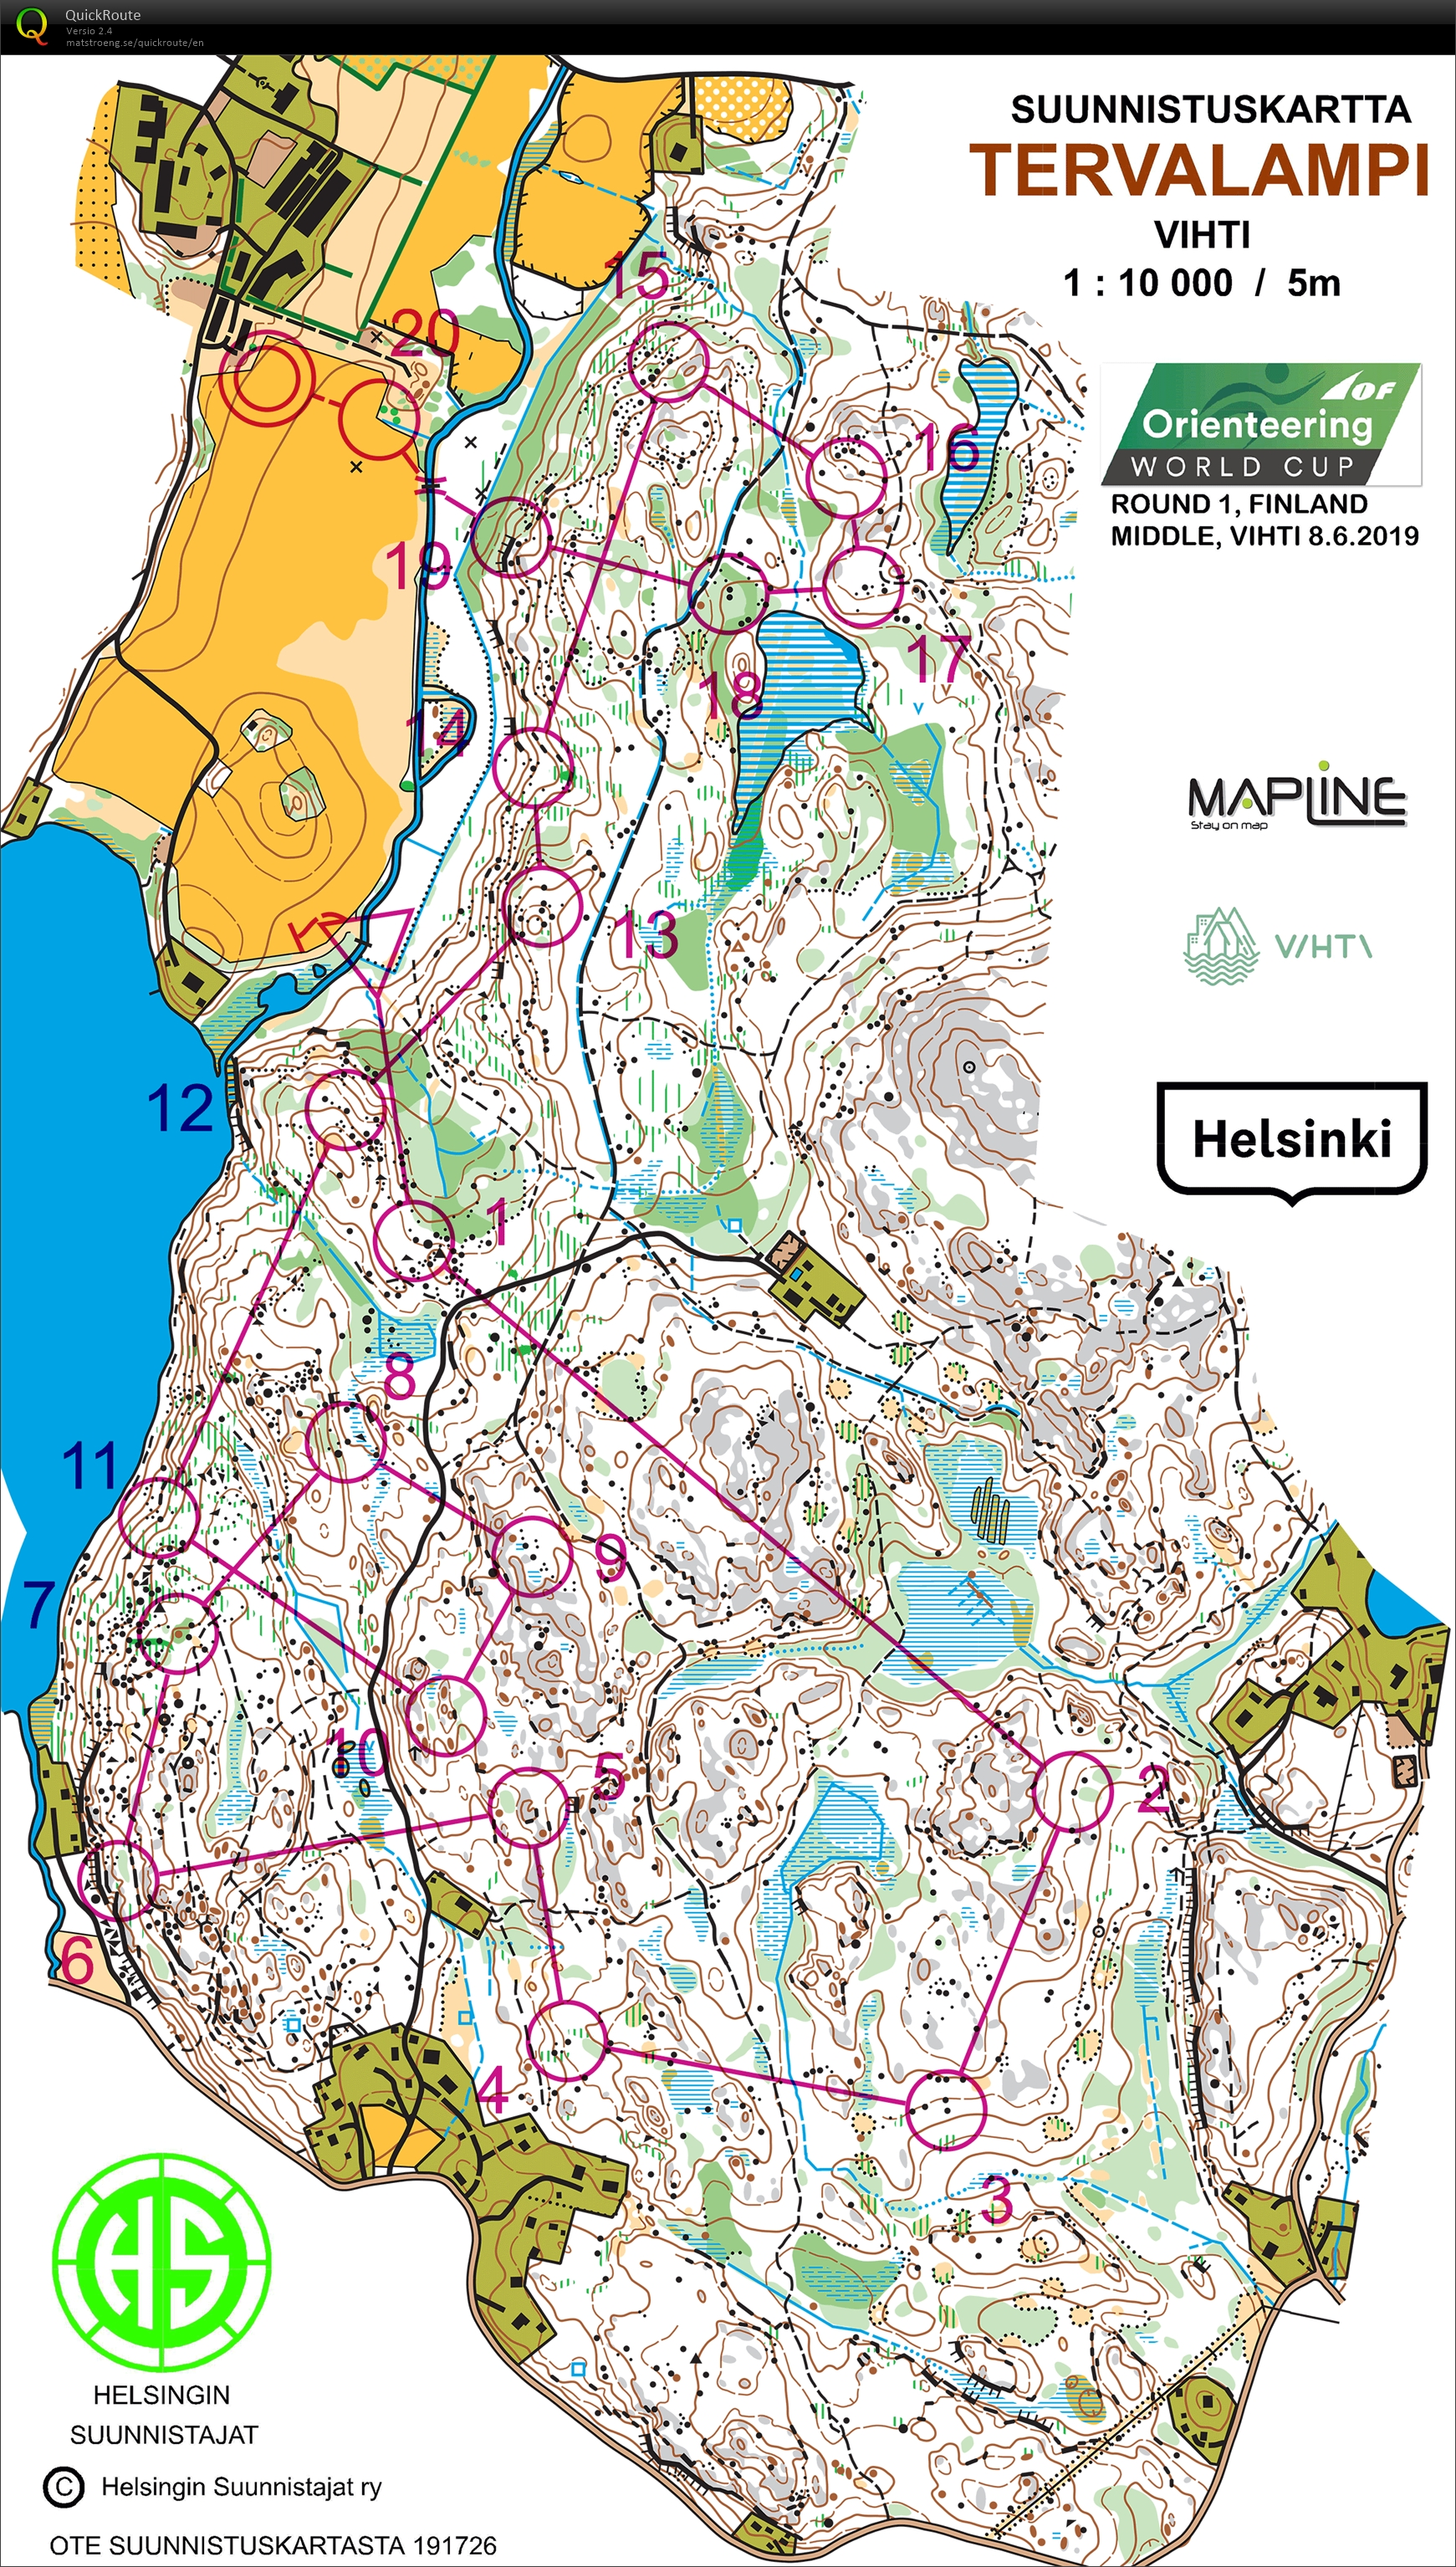 World Cup Middle June 8th 2019 Orienteering Map From Aleksi